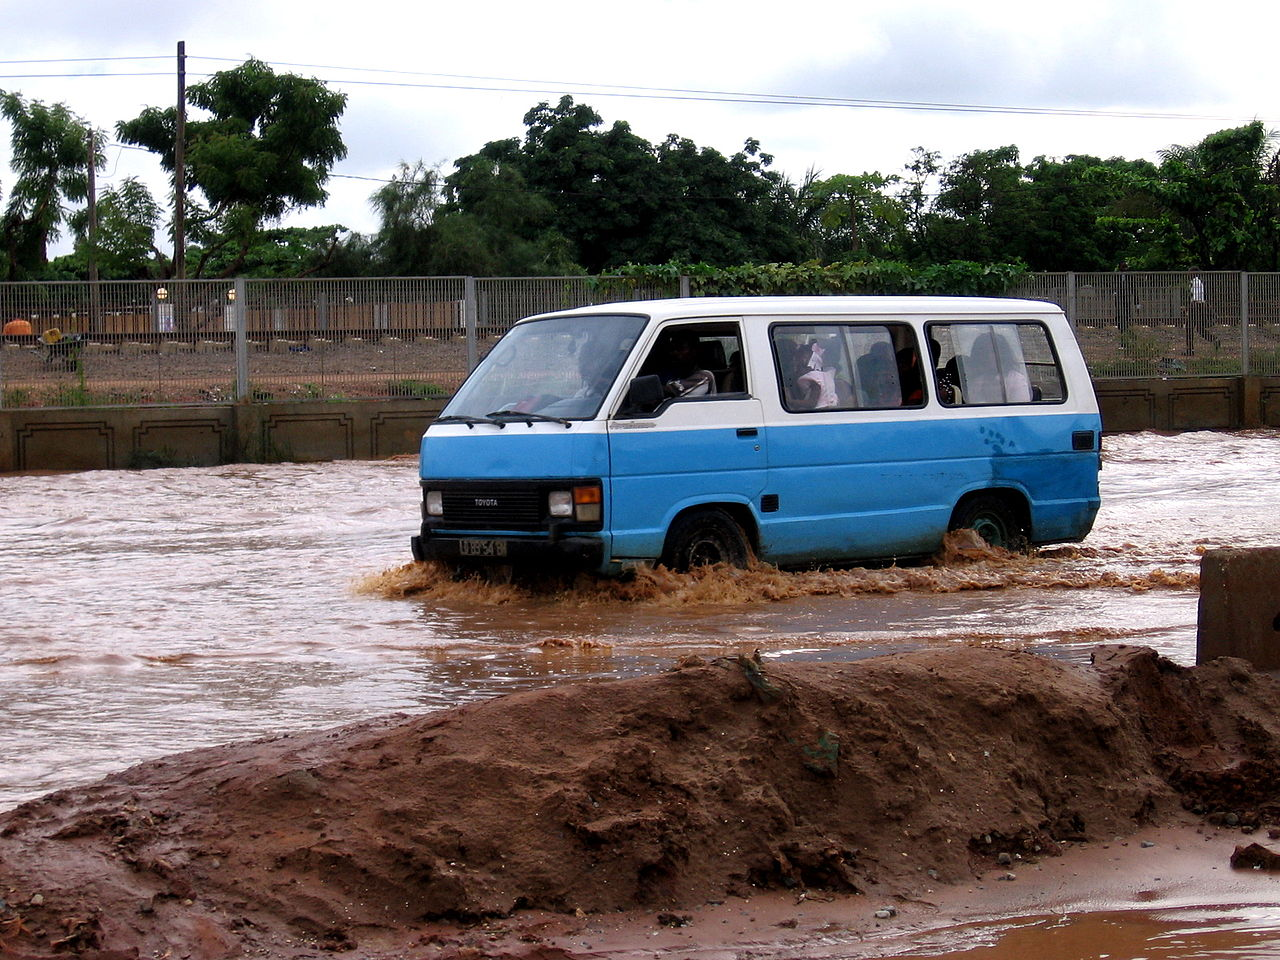 Luanda_taxi_called_Candongueiro_after_heavy_rain_Luanda